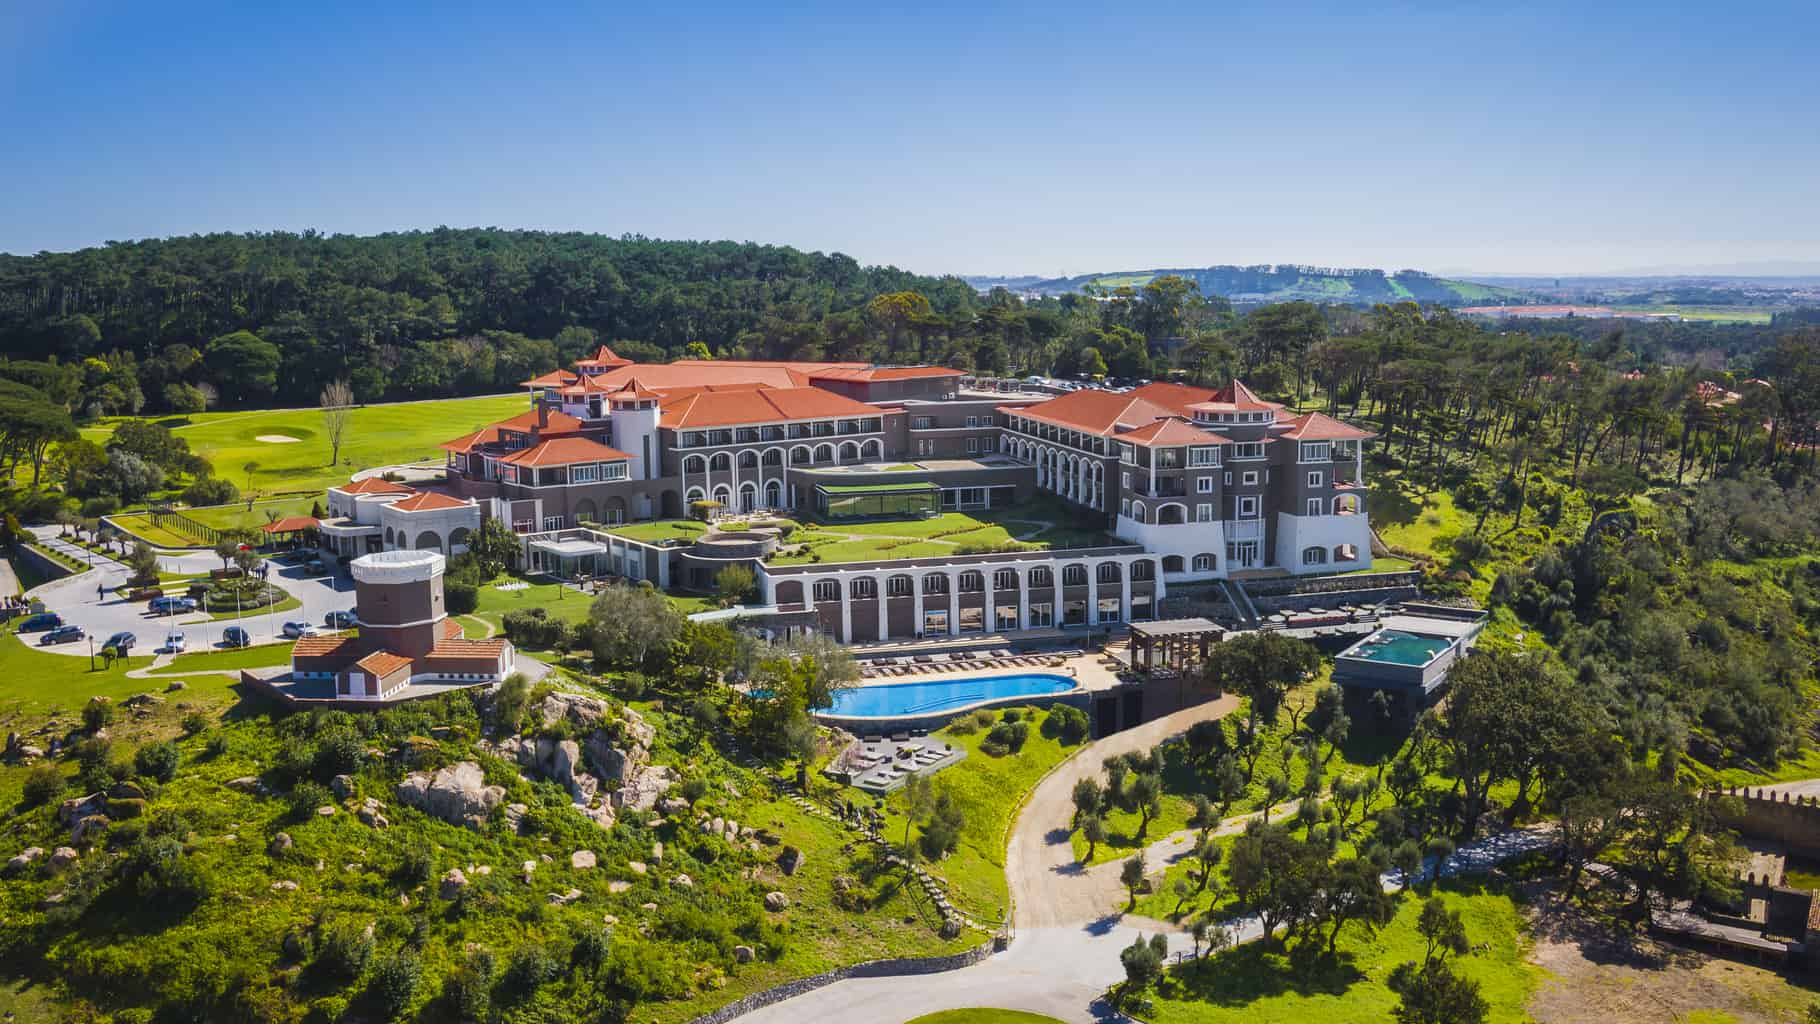 Aerial View over Penha Longa Resort with green hills and terracotta roofs